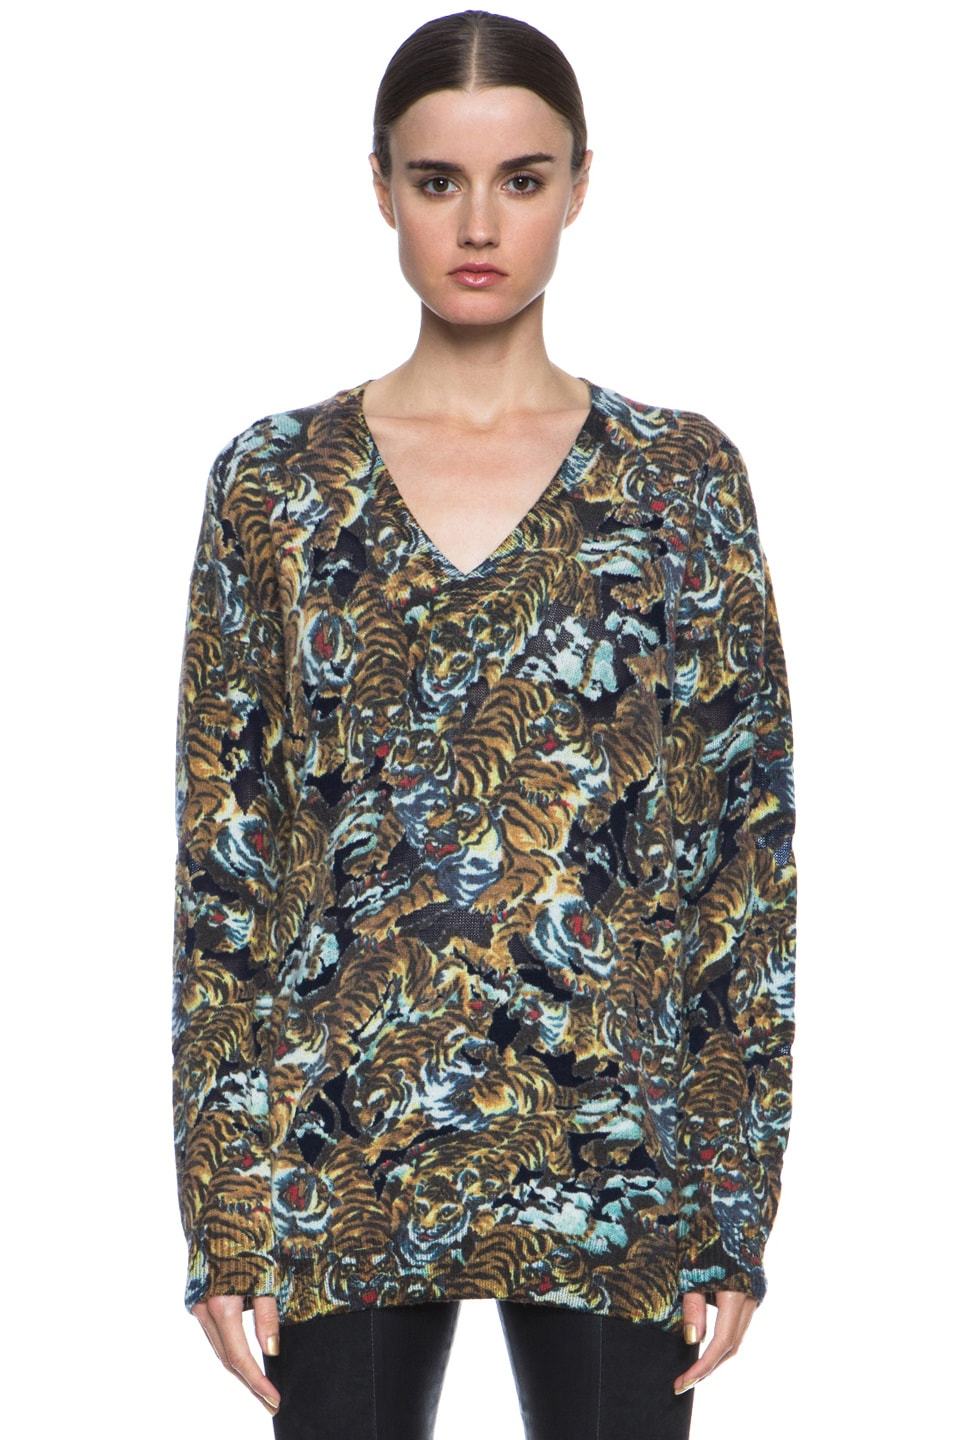 ad5529c7 Image 1 of Kenzo Flying Tiger Print with Devore Wool-Blend Sweater in Bleu  Nuit